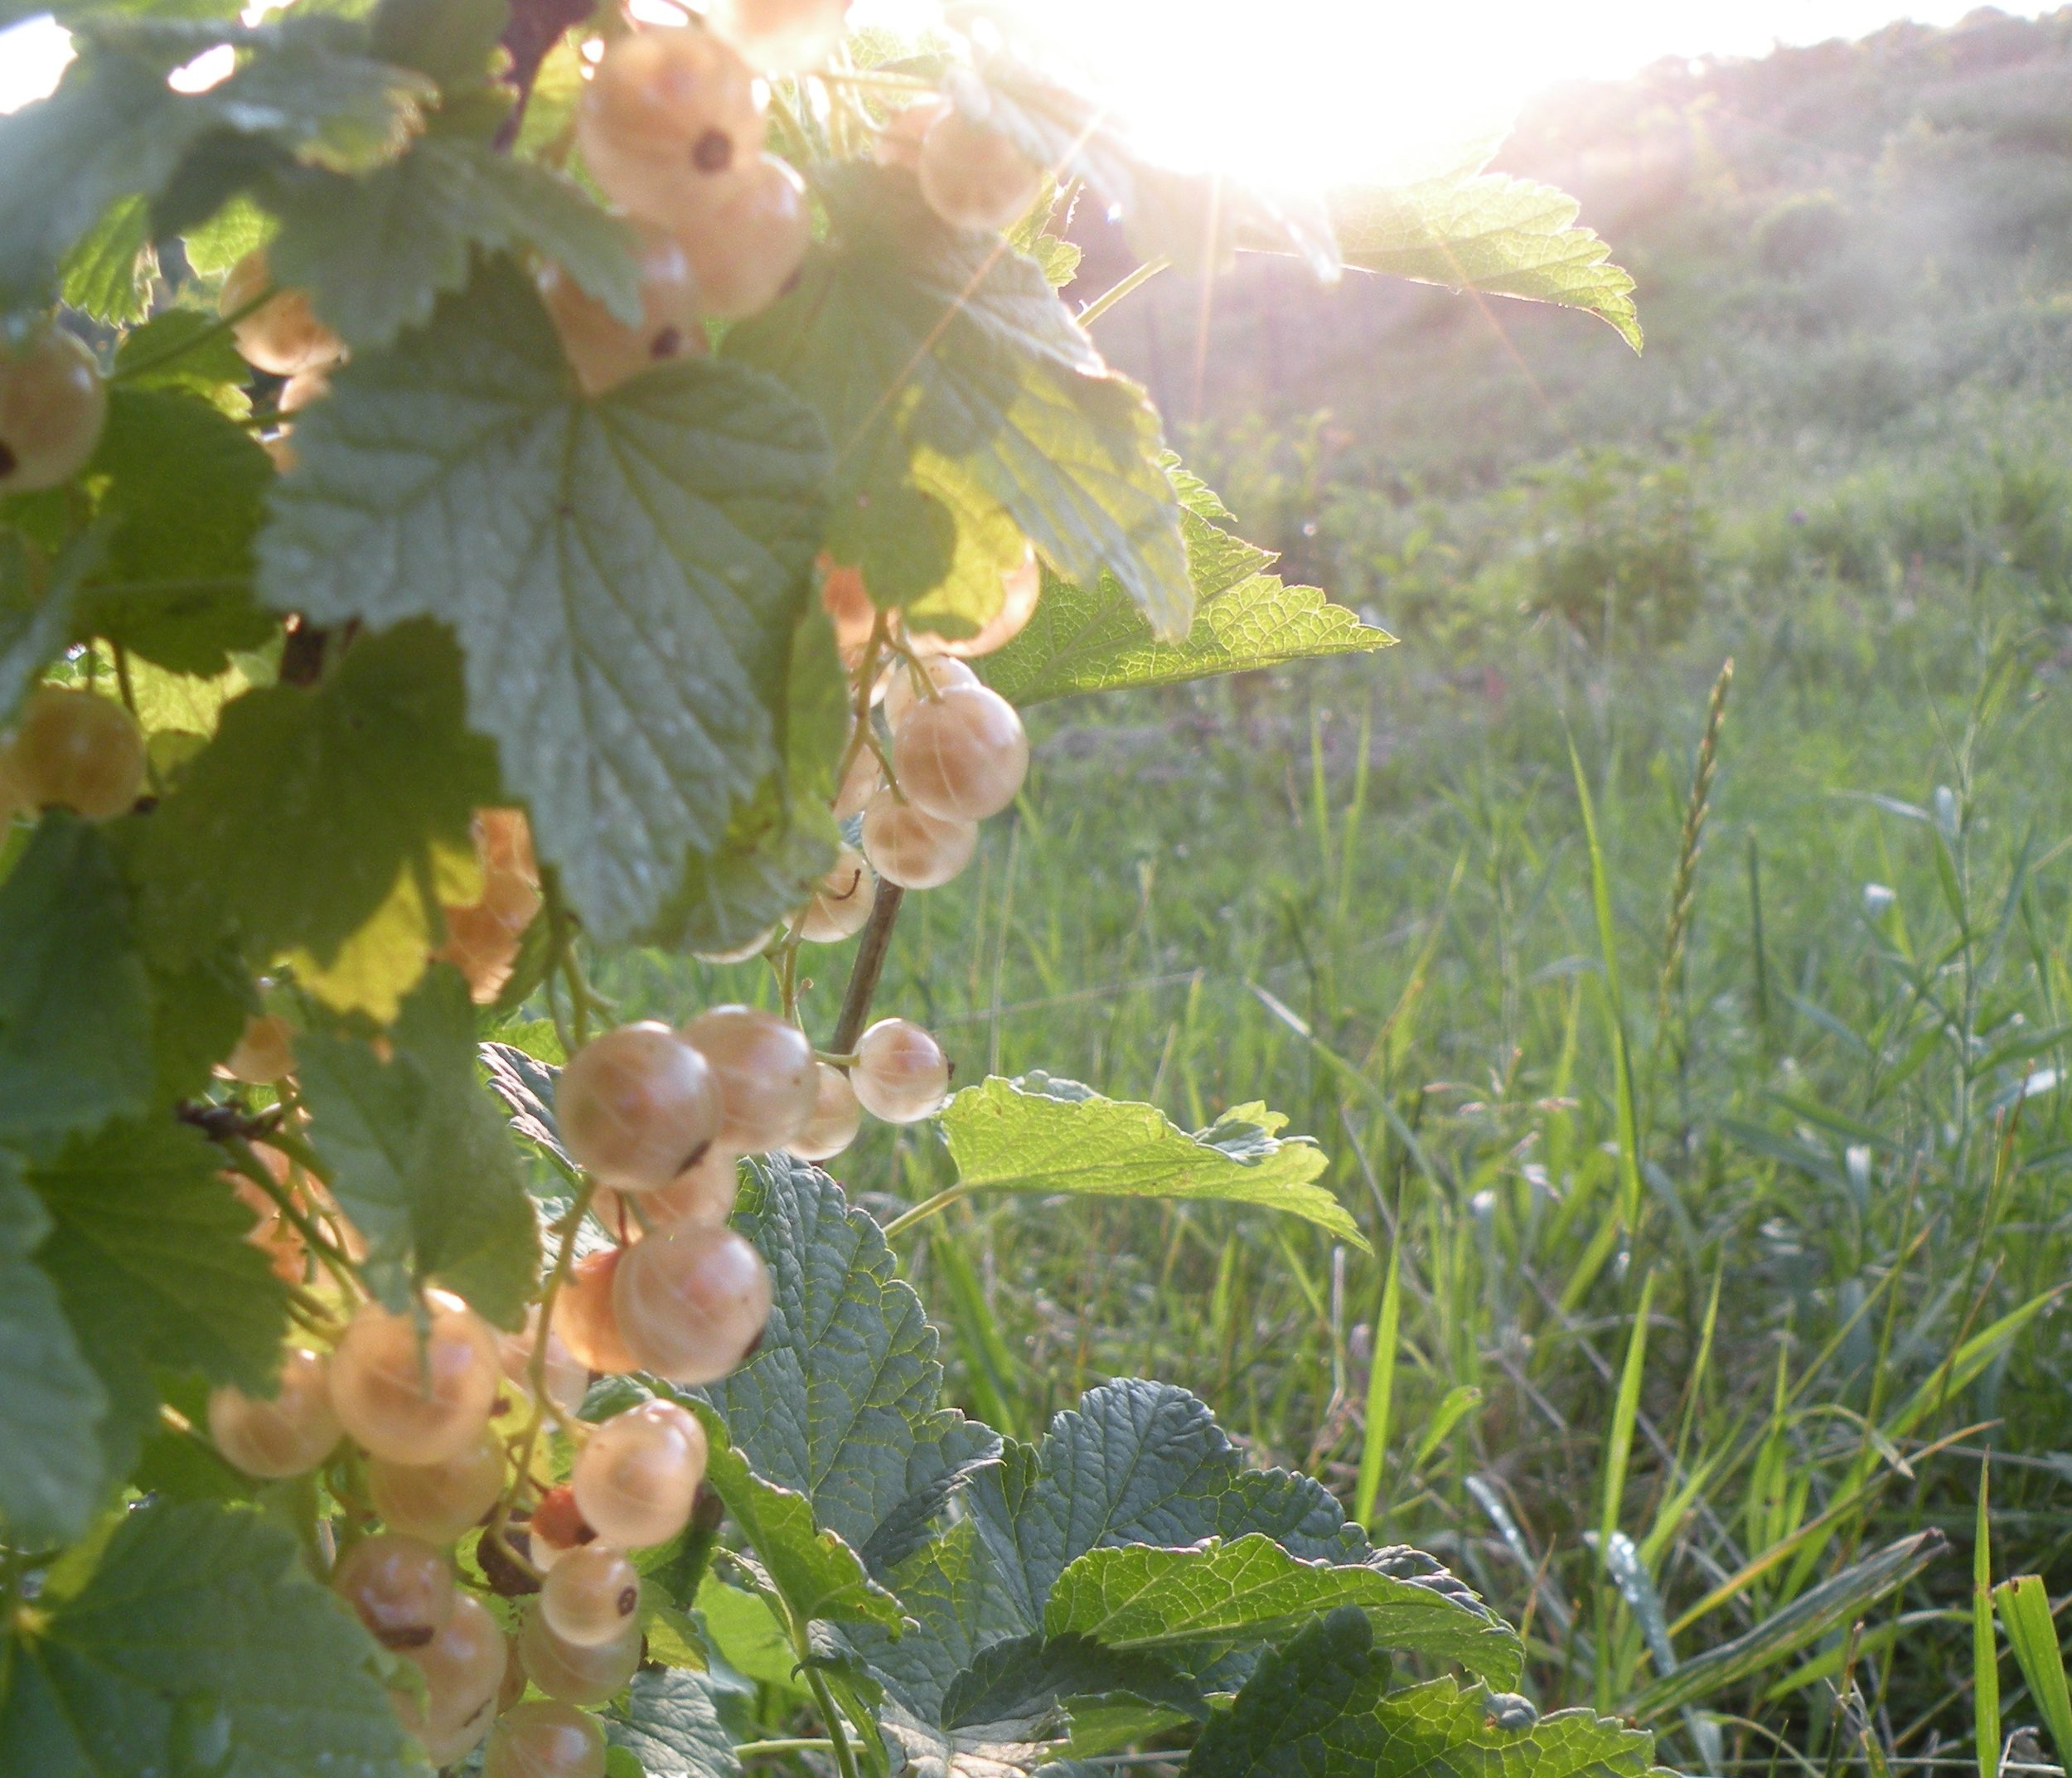 white currant fruit ripening in an early July sunset. Photo by Erin Schneider